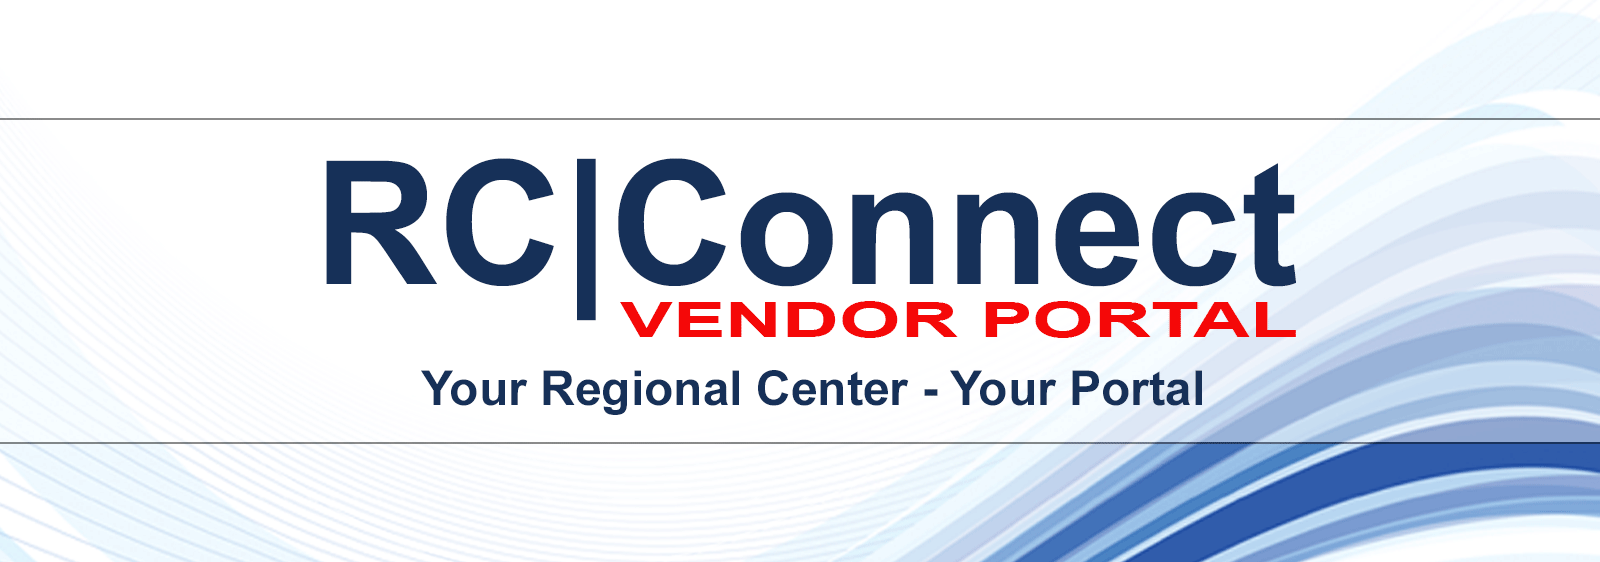 RC|Connect Vendor Portal